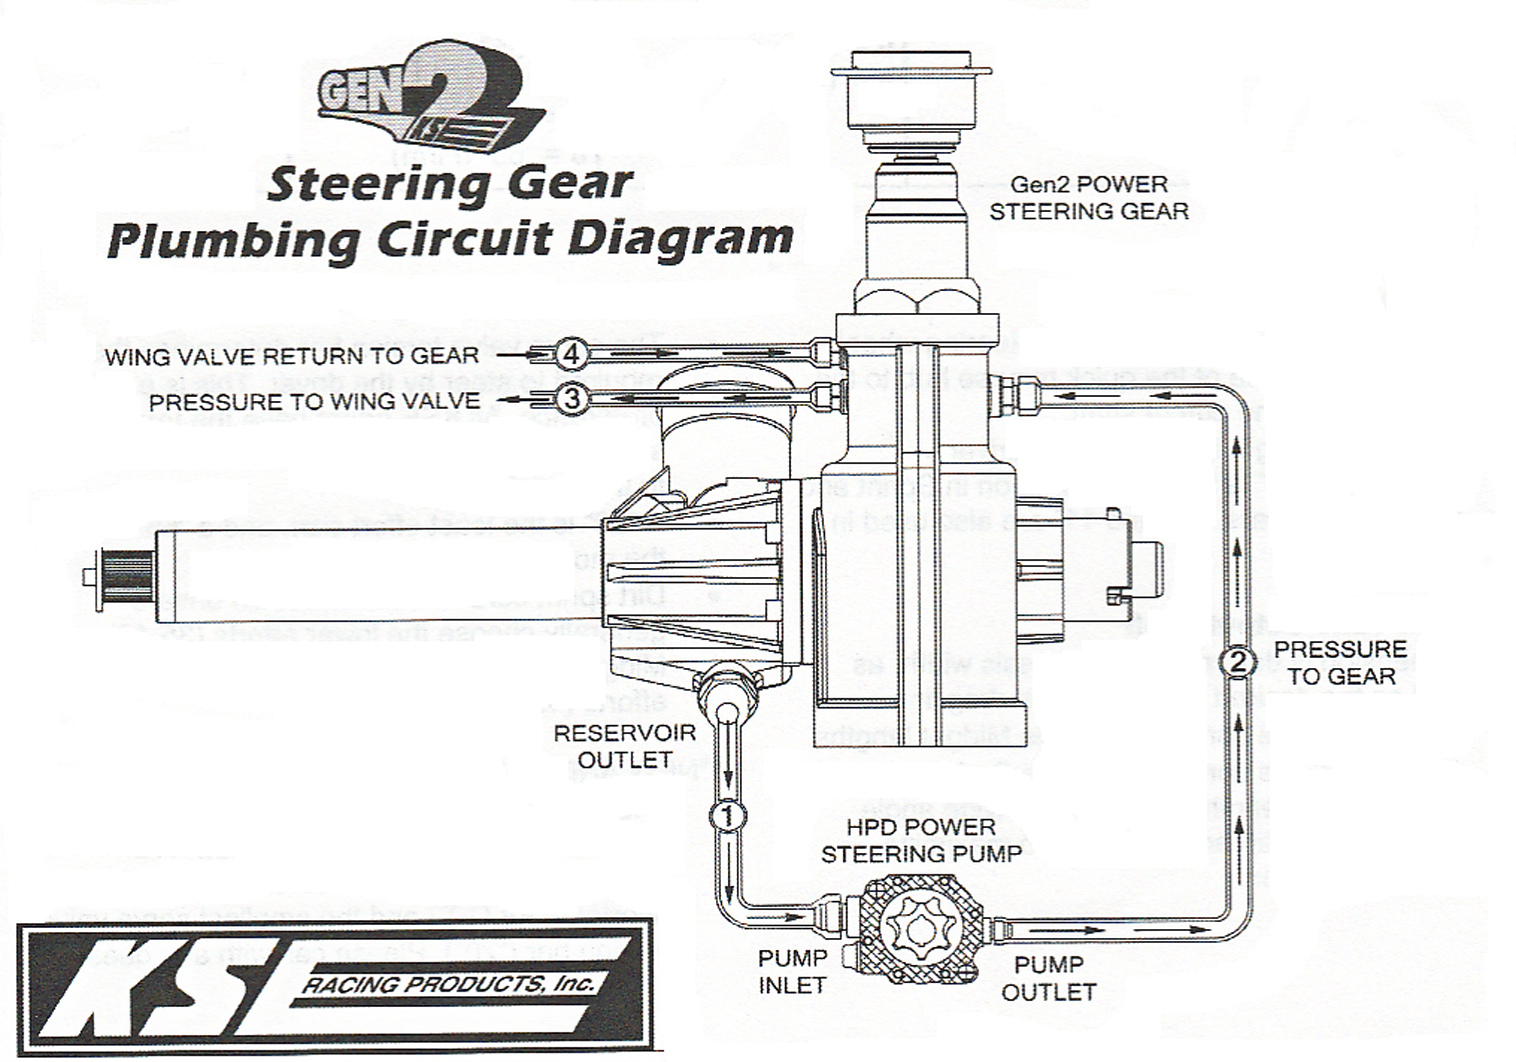 Typical Fuel Injection Components Parts Diagram Car Parts Diagram